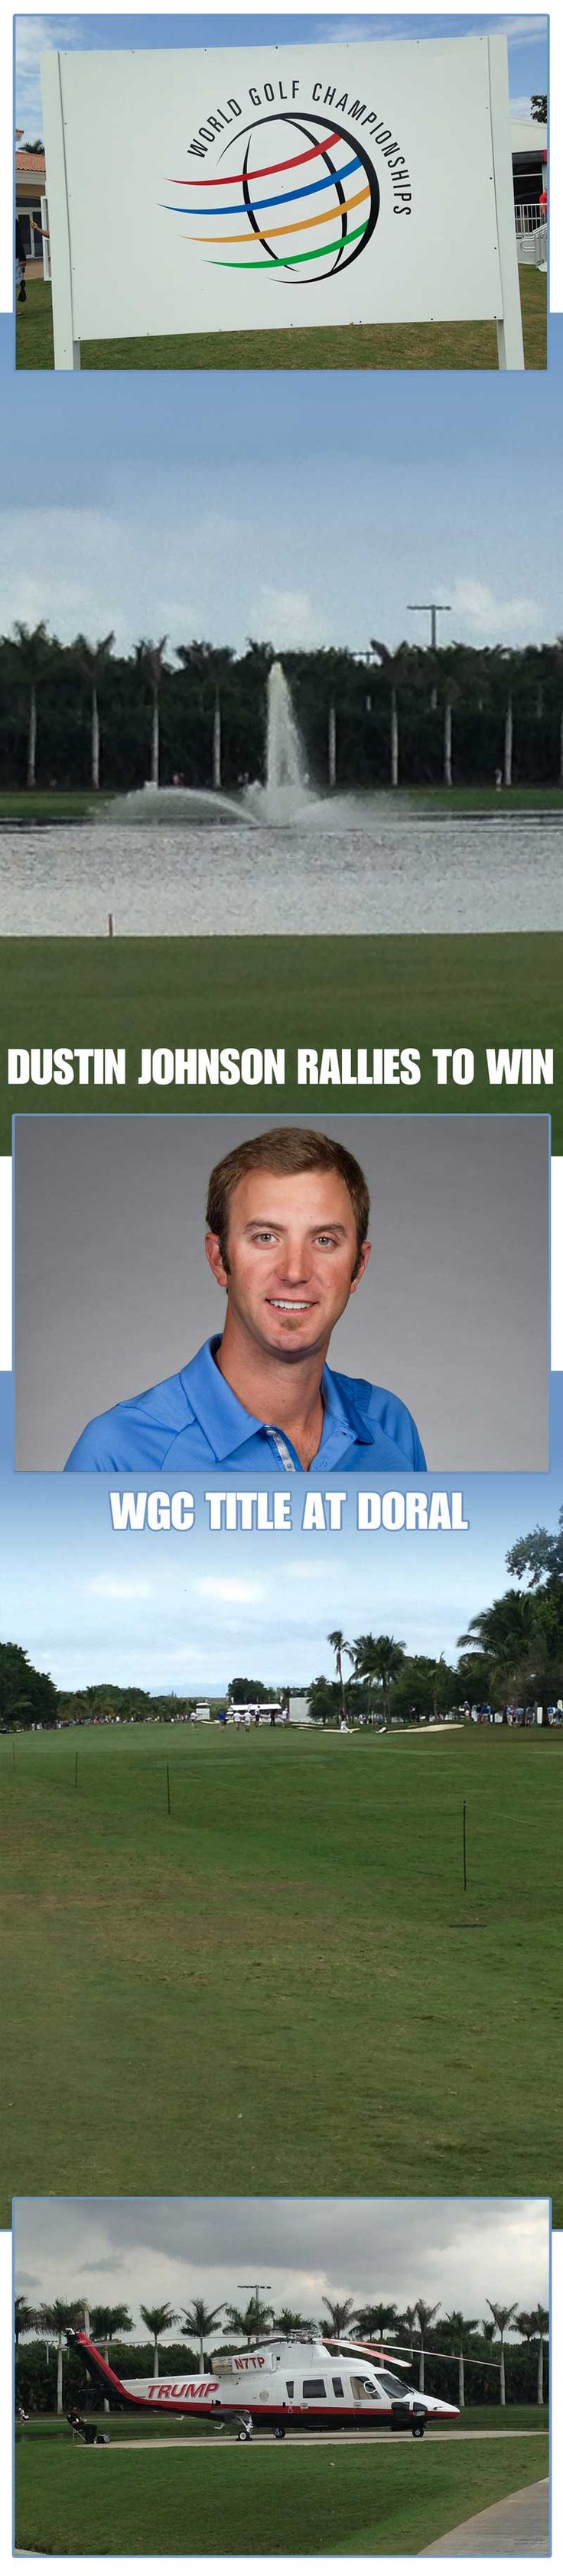 "Dustin Johnson has had a seven month stretch unlike any other in his life. It was 7 months ago that the Jupiter resident announced that he was taking a six month leave of absence to deal with ""personal issues"". Shortly thereafter, golf.com released a report saying it was actually a six month suspension for a failed drug test. Johnson denied that report many times but either way he wasn't playing golf for six months, that much we knew. follow me on www.twitter.com/danhausergolf"